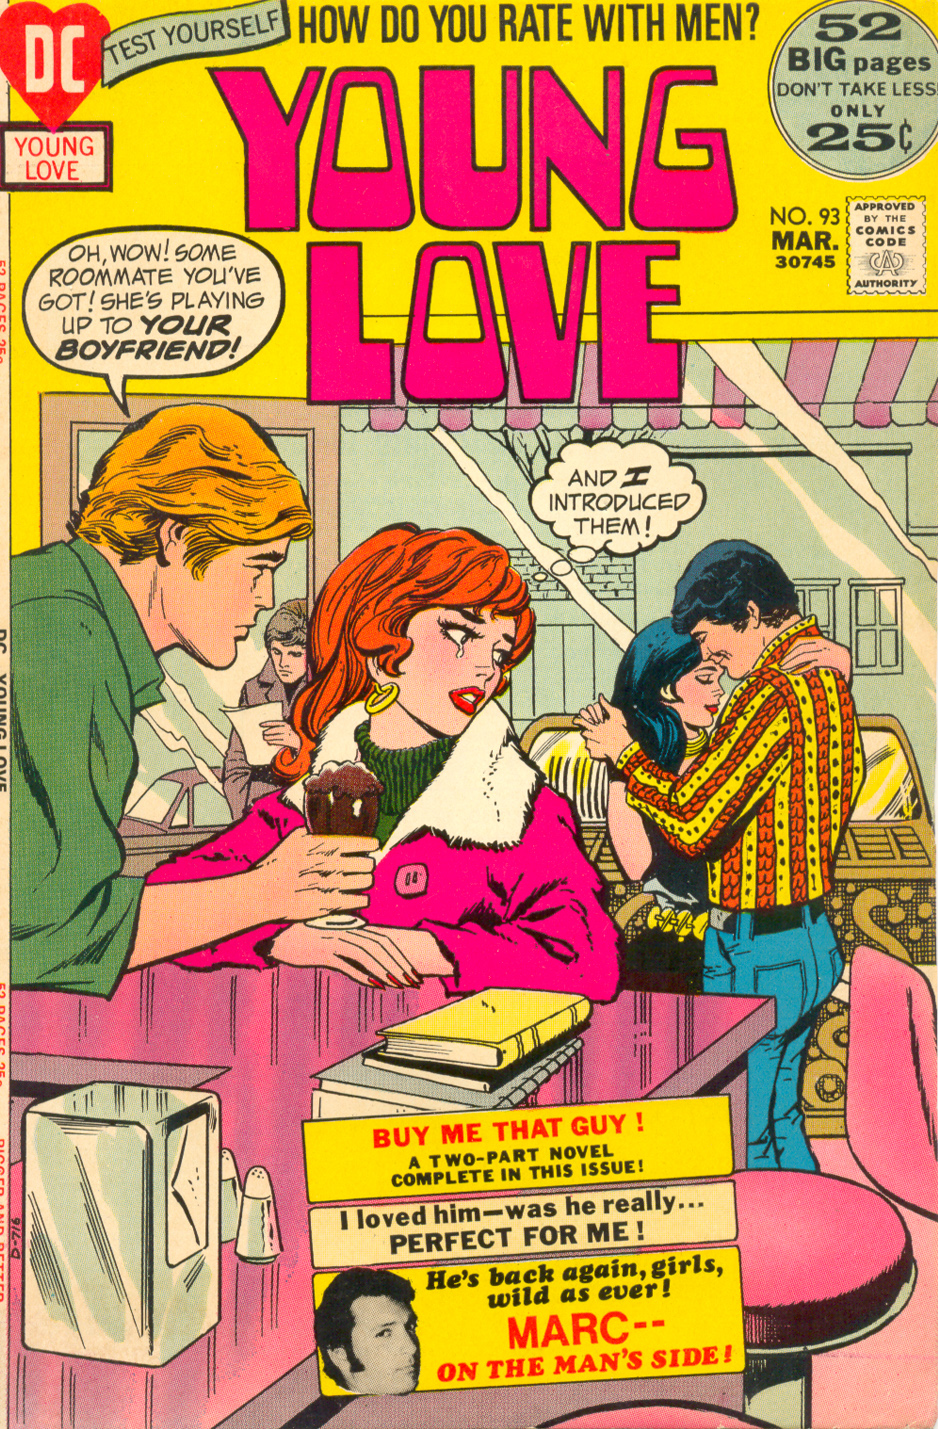 Young Love  #93 (March 1972) Pencils: John Rosenberger, Inks: Vince Colletta